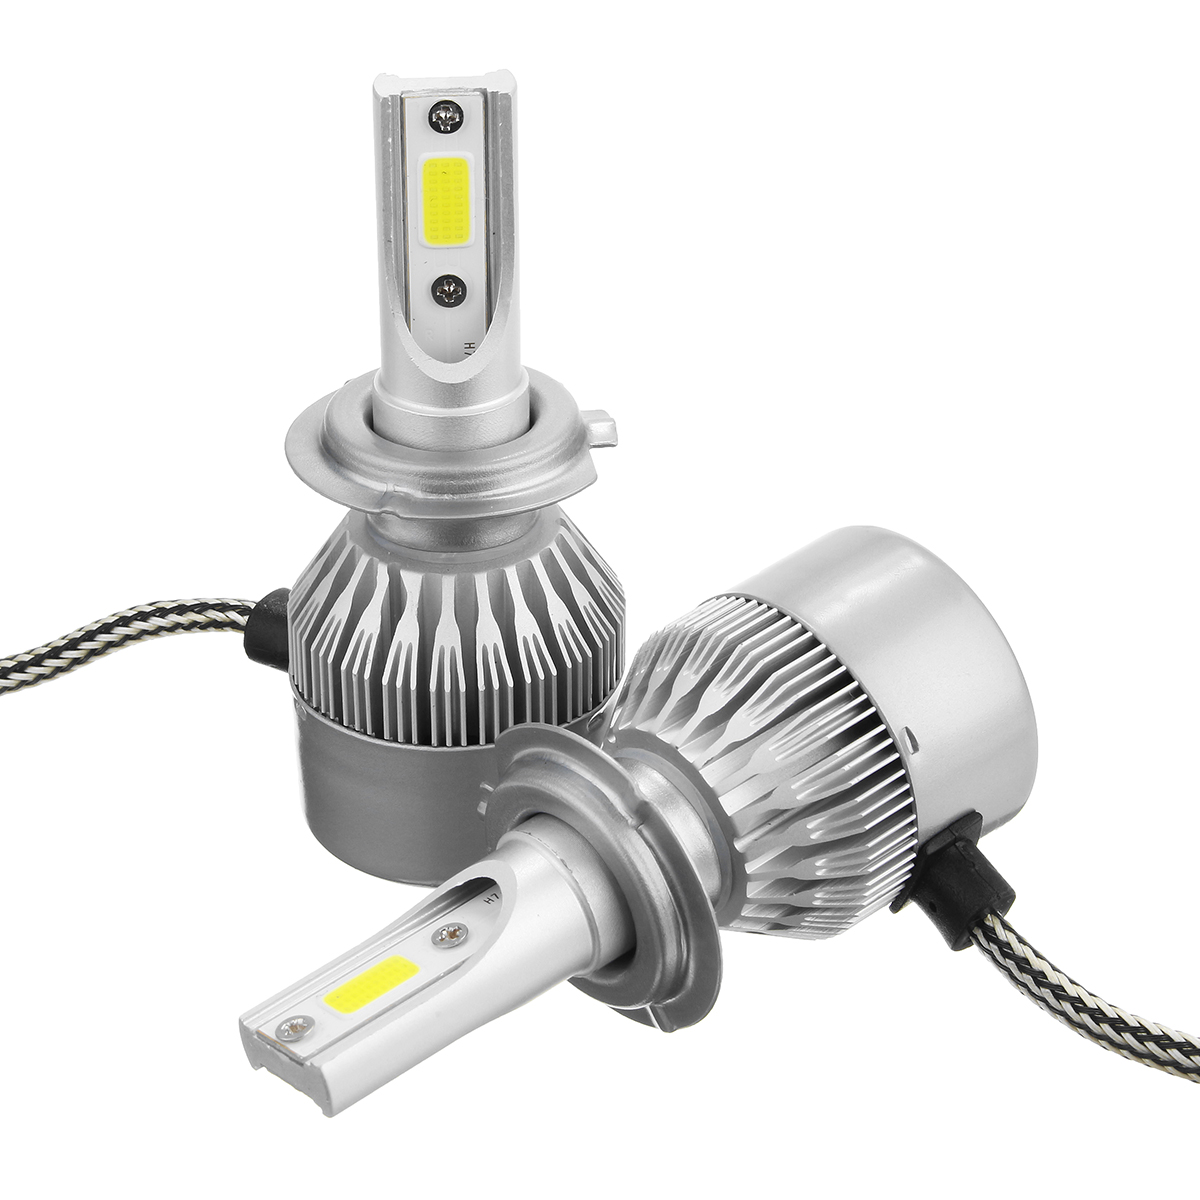 Banggood price history to Pair C6 72W 7600LM 6000k-6500K White IP68 COB Car LED Headlights Lamp Bulb H1 H3 H7 H8/9/11 9005/6